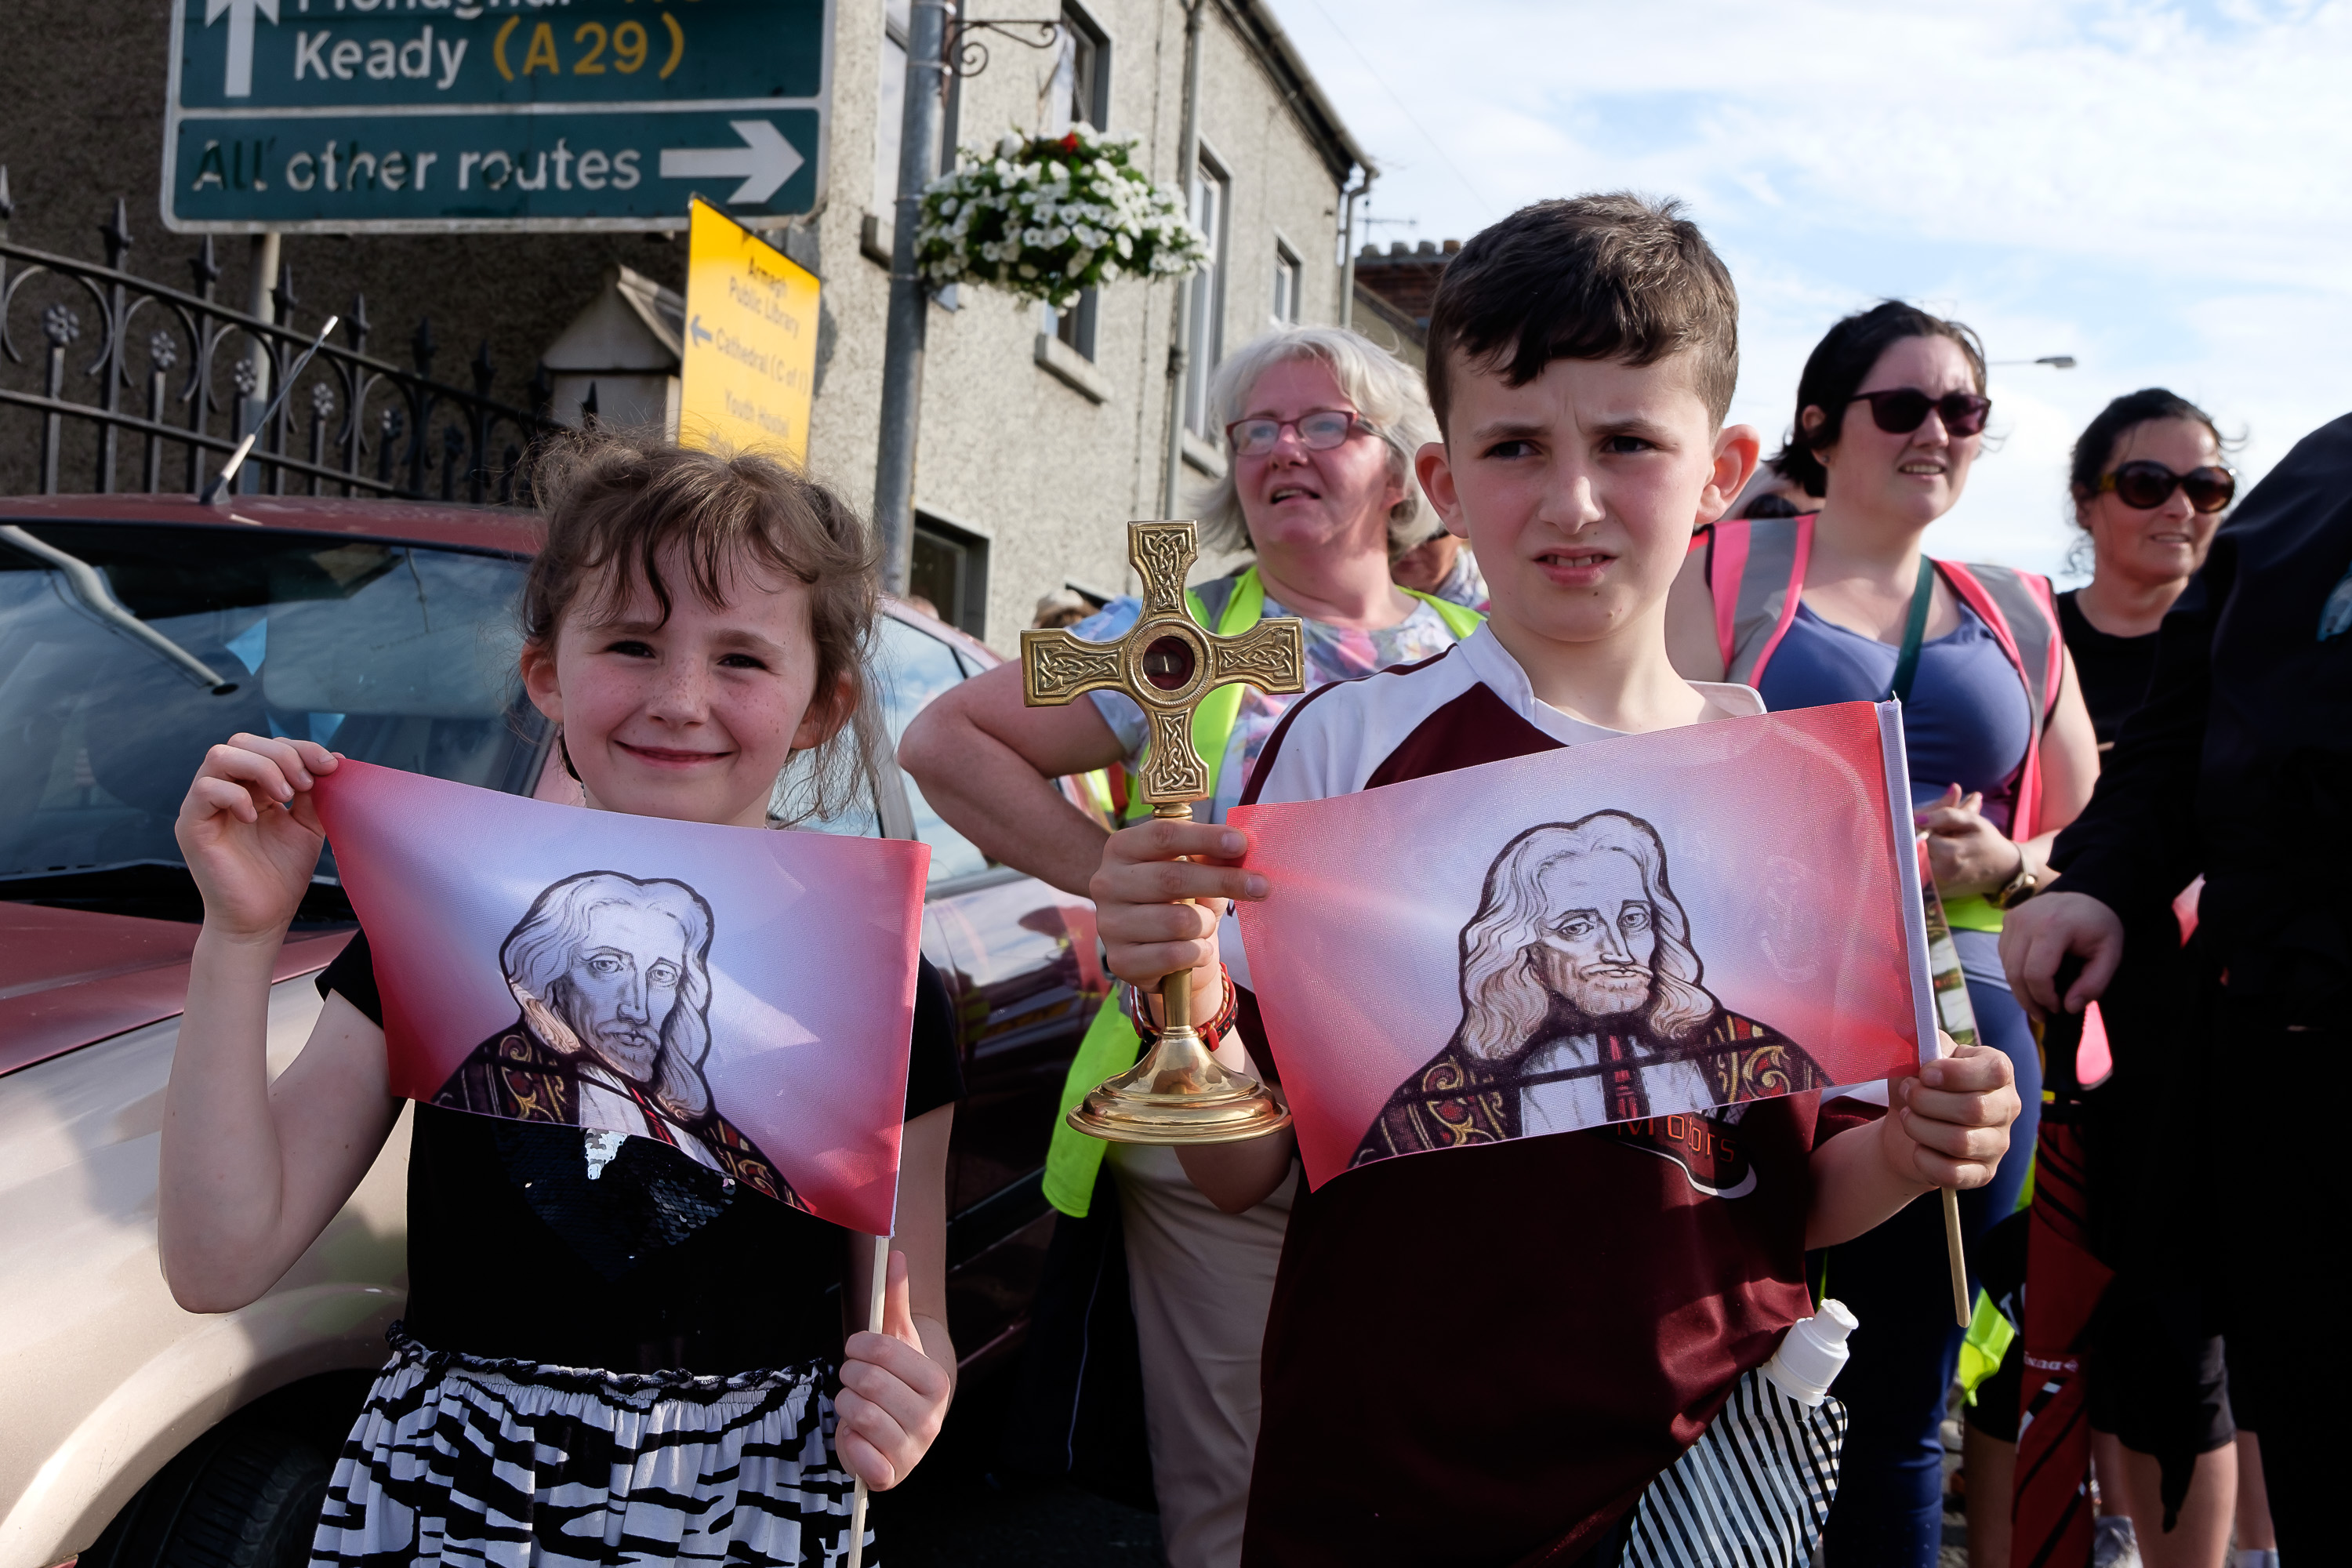 St Oliver Plunkett Camino  passes through Armagh City CentreArmagh City Centre Armagh Co.Armagh 9 July 2019CREDIT: LiamMcArdle.com